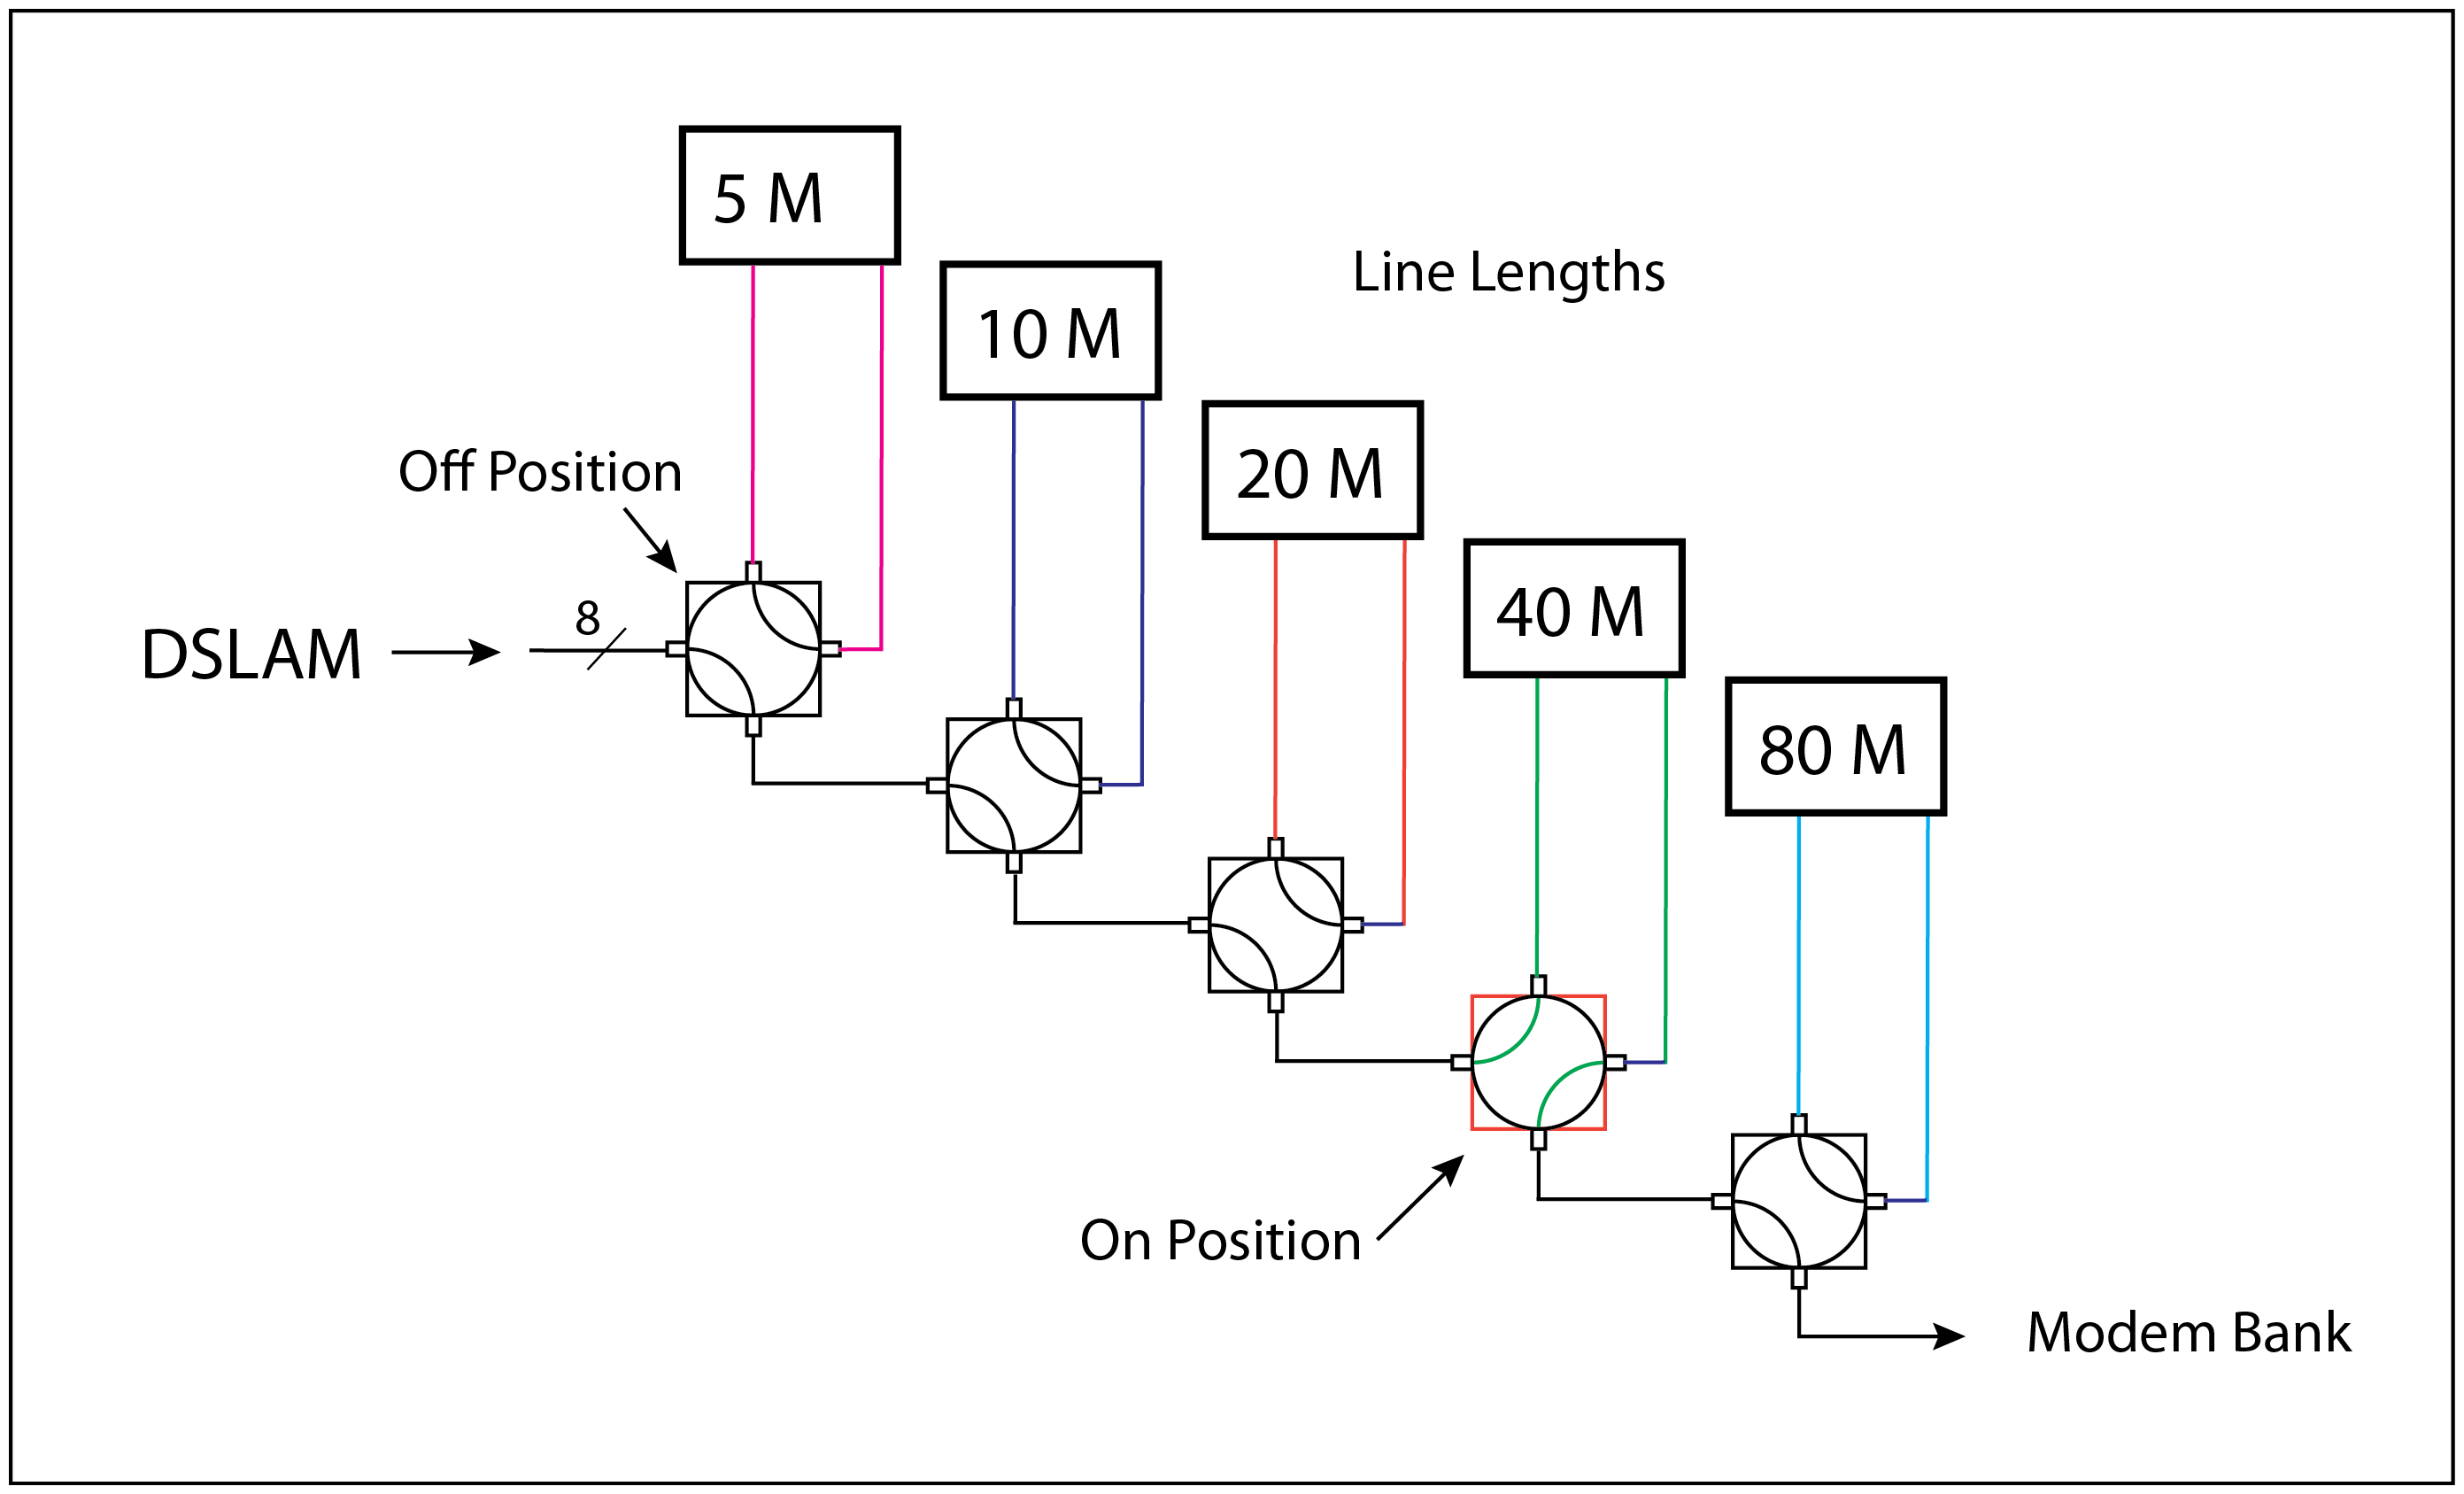 Line Length switch scematic